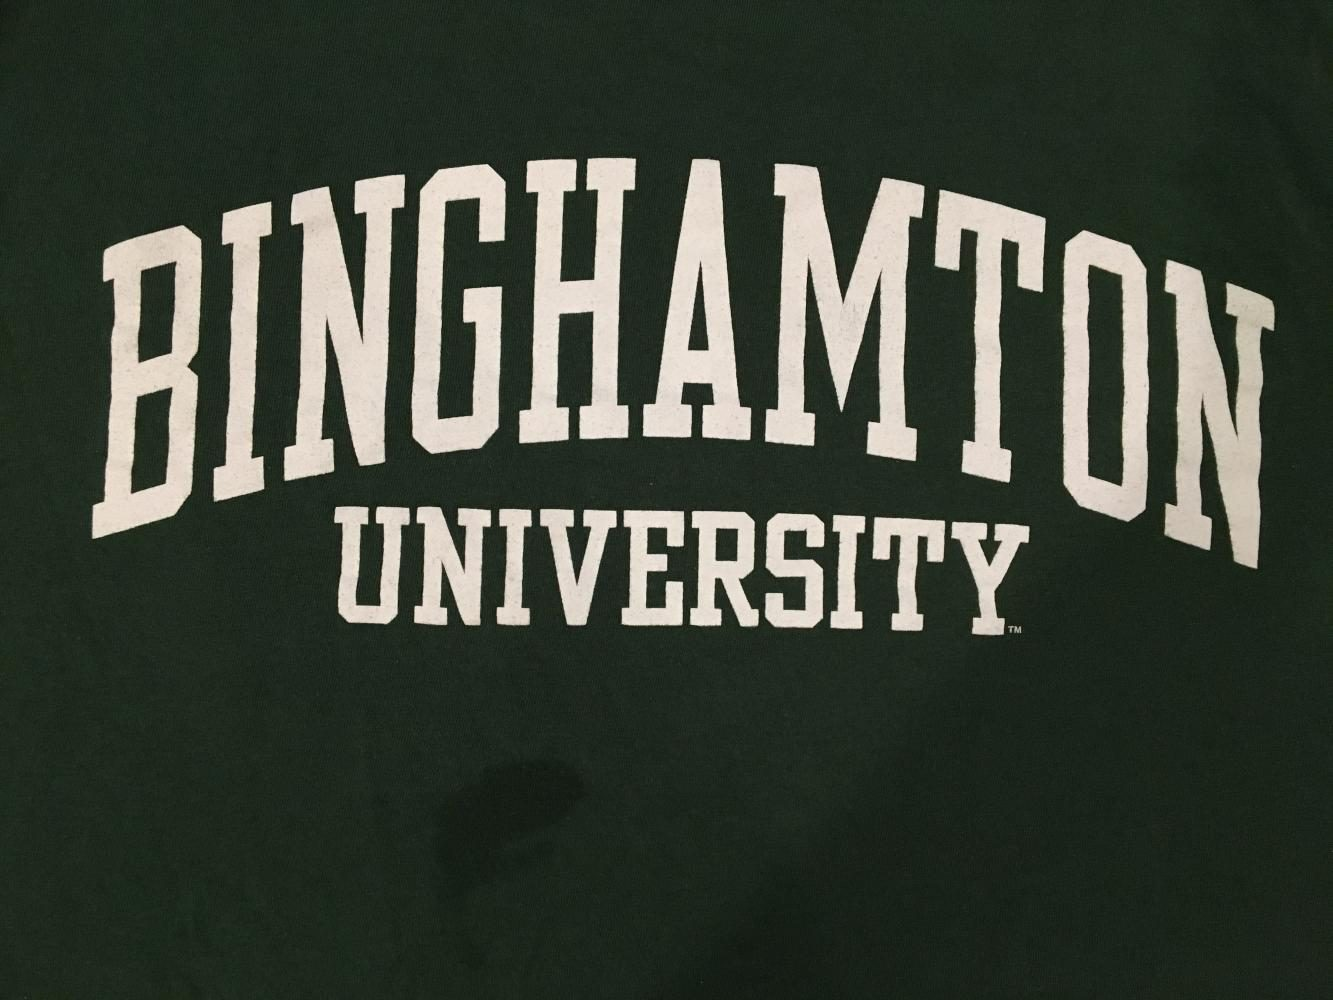 Binghamton+University+is+a+SUNY+school+that+will+introduce+the+new+tuition+plan.